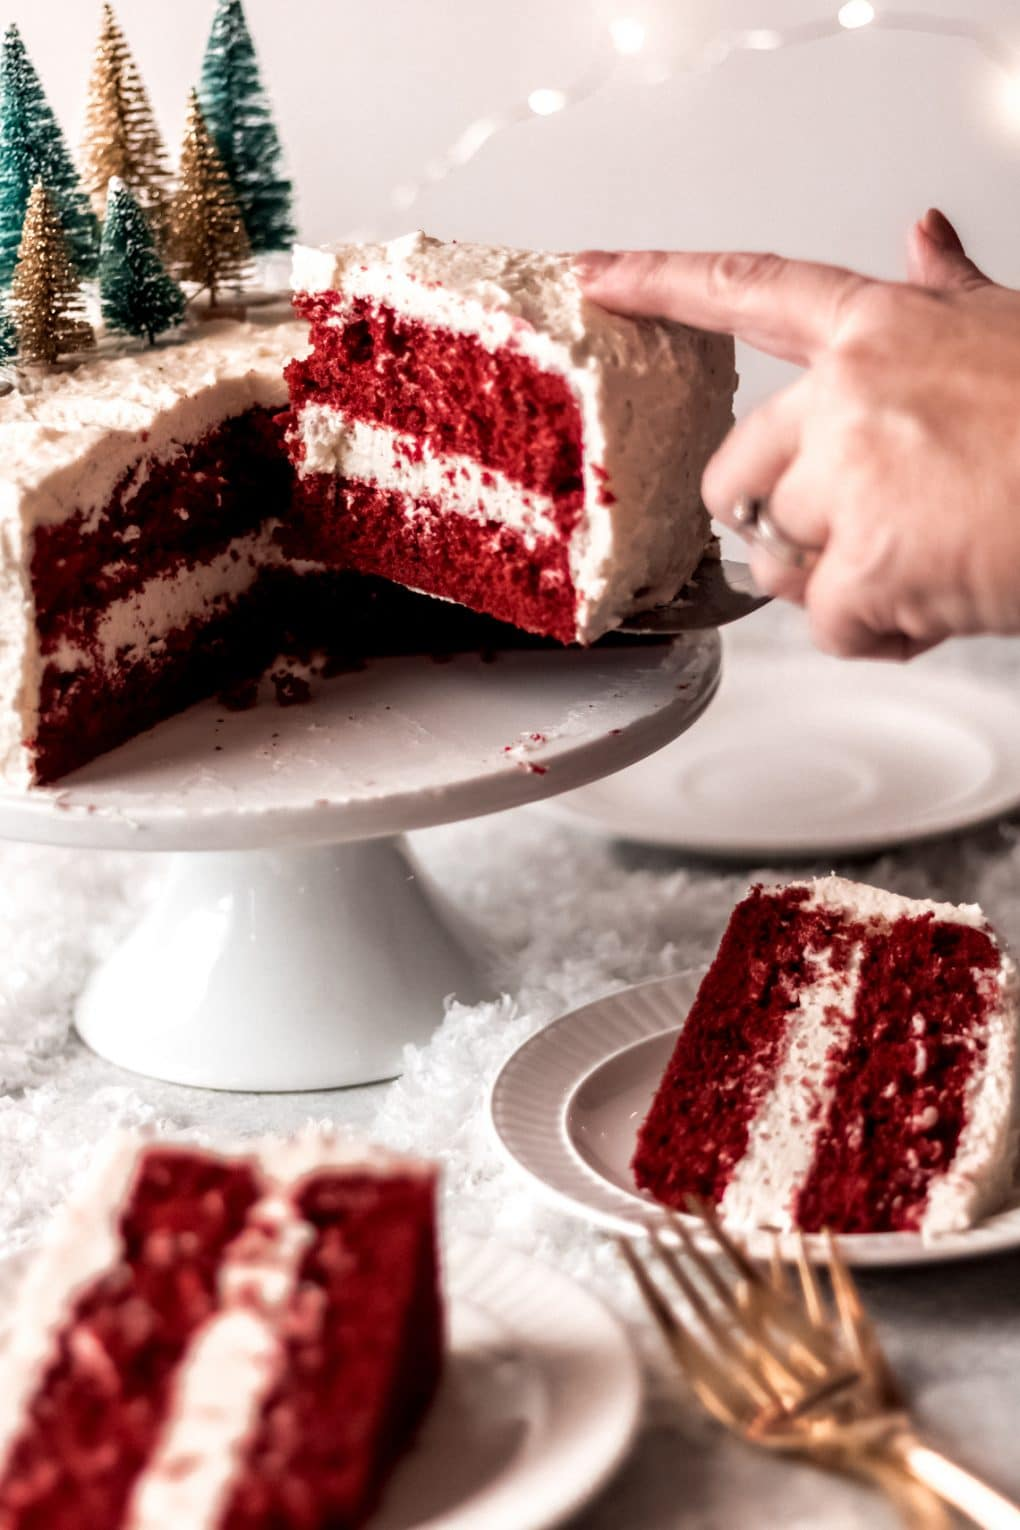 a woman pulling out a slice of red velvet cake with butter roux frosting getting ready to serve onto a plate. There are two other plates on the table that already have a slice of cake on them.